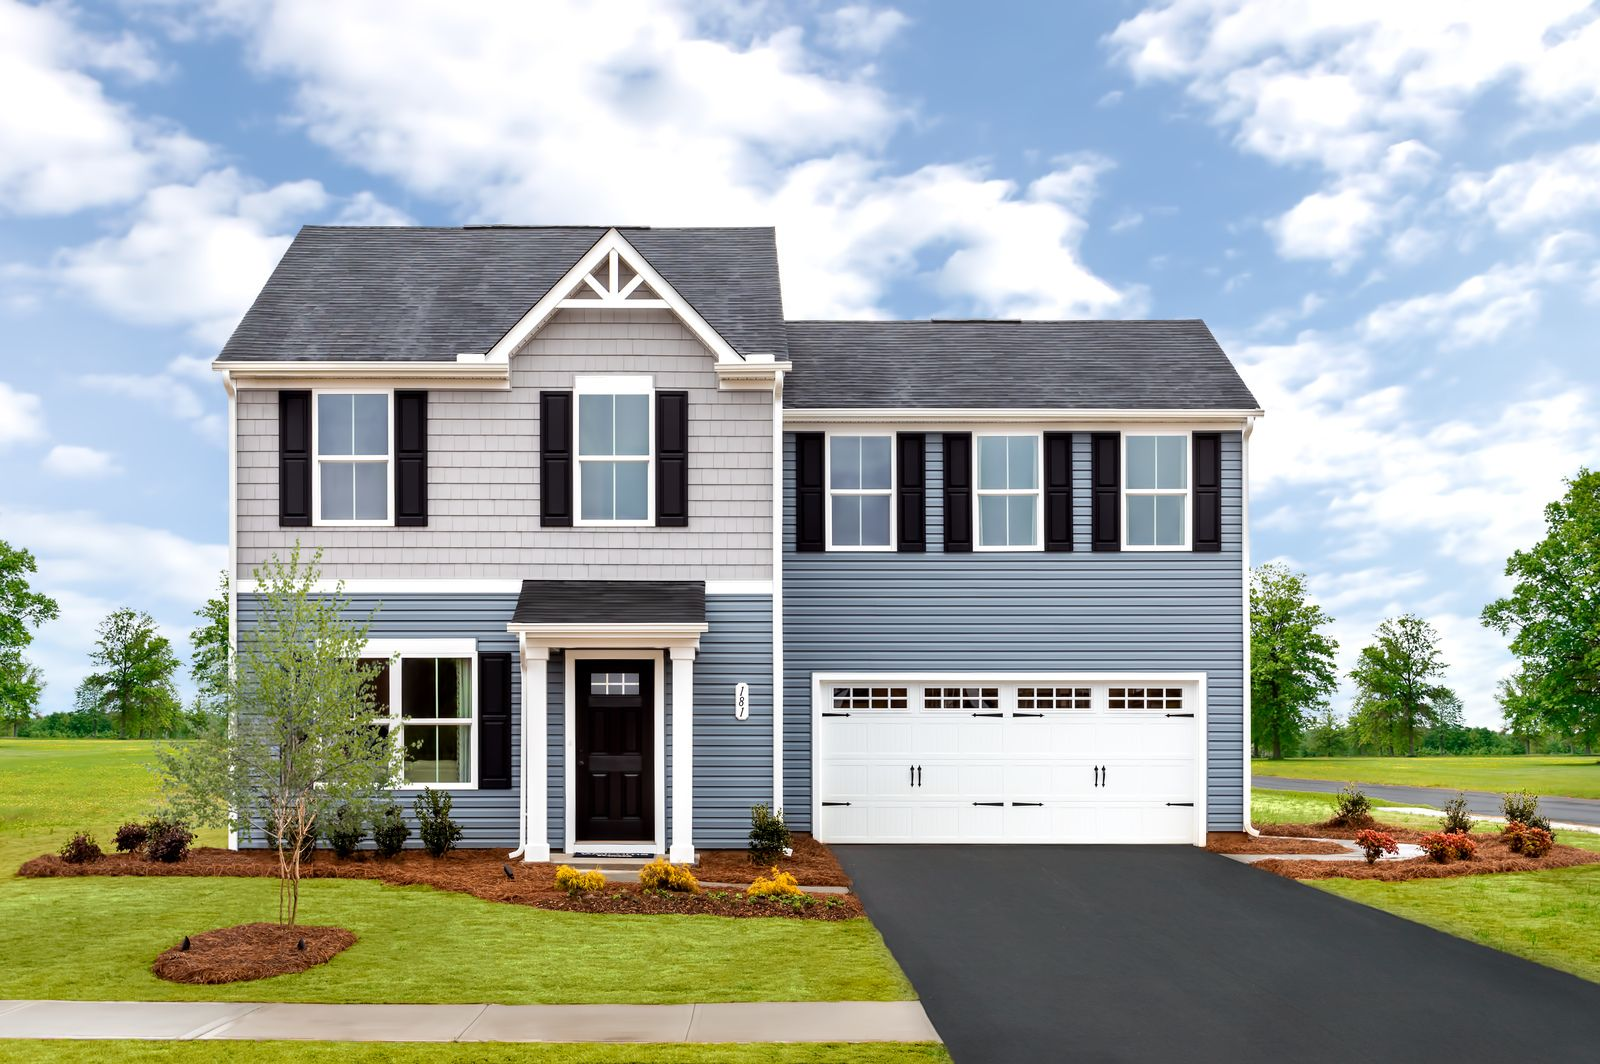 Welcome to Imperial Ridge:The lowest priced single-family community in the West Allegheny School District. Wooded setting & large backyards just 7 minutes to Robinson.Click here to join the VIP List.